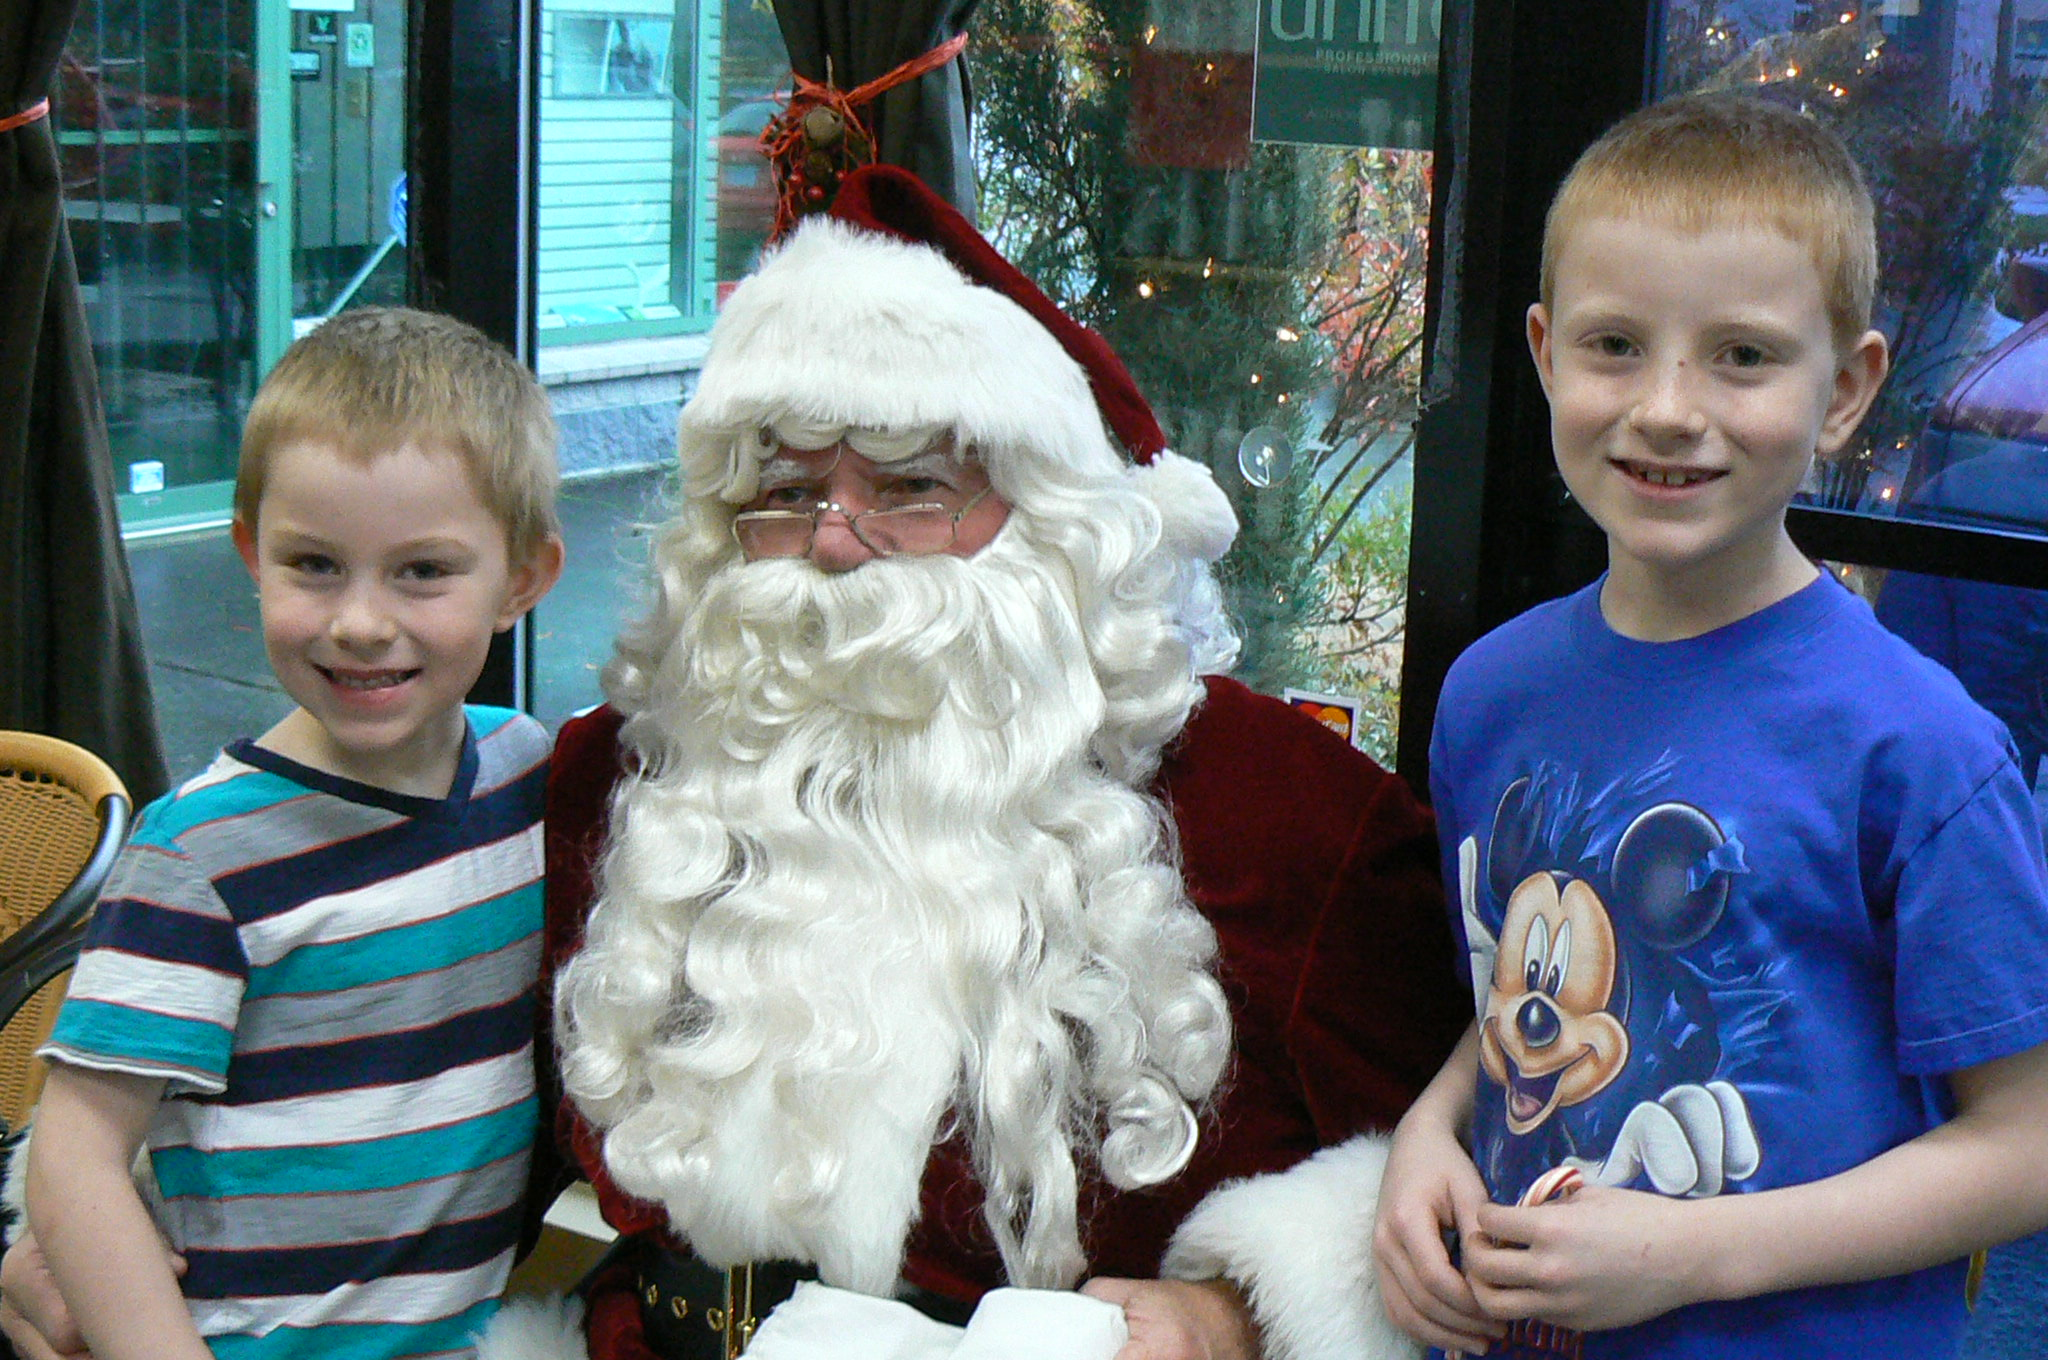 Santa comes but once a year